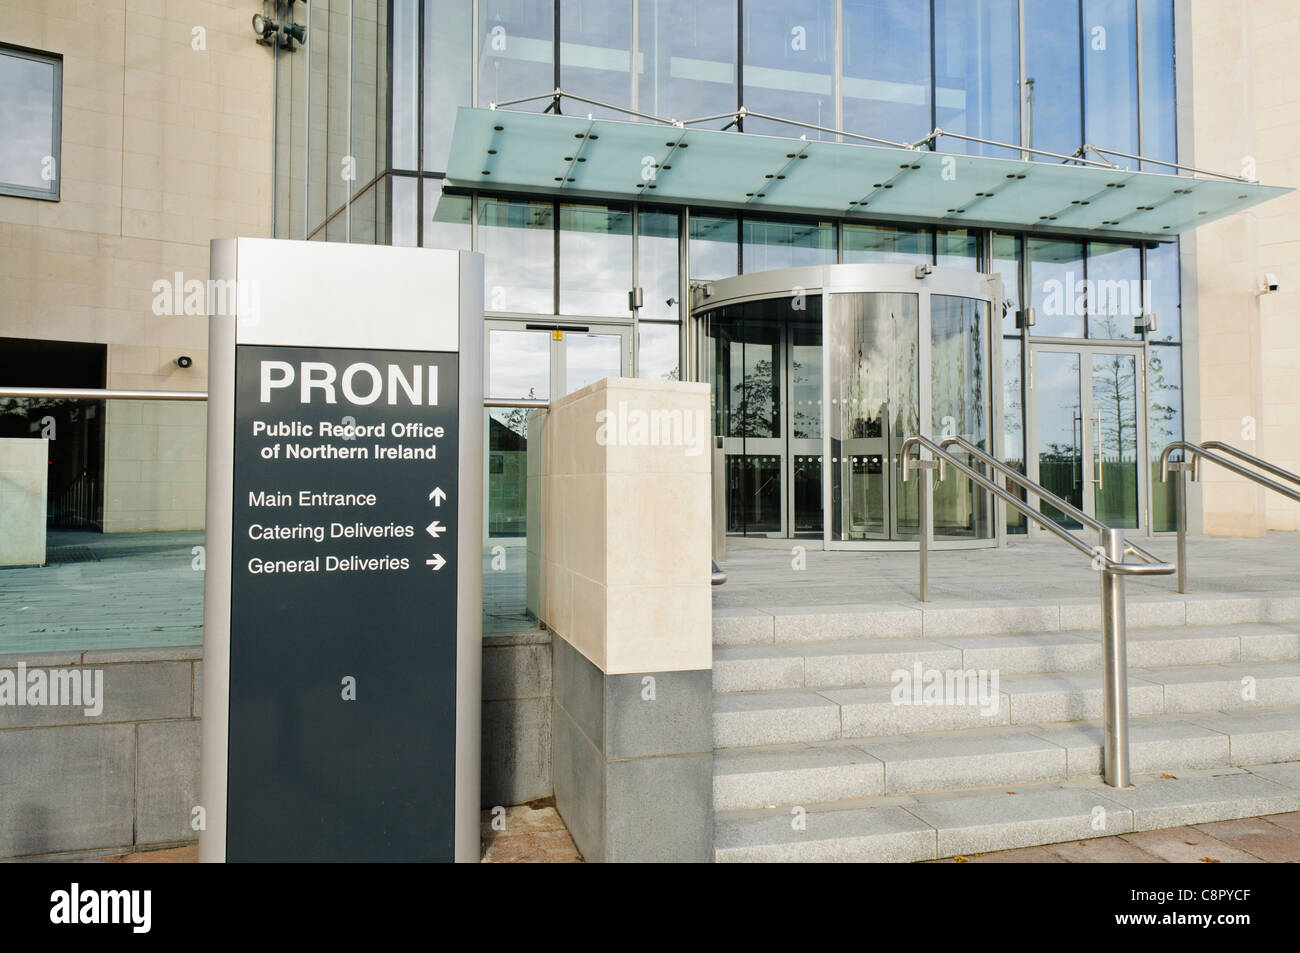 Public Records Office for Northern Ireland (PRONI) new premises in Belfast - Stock Image